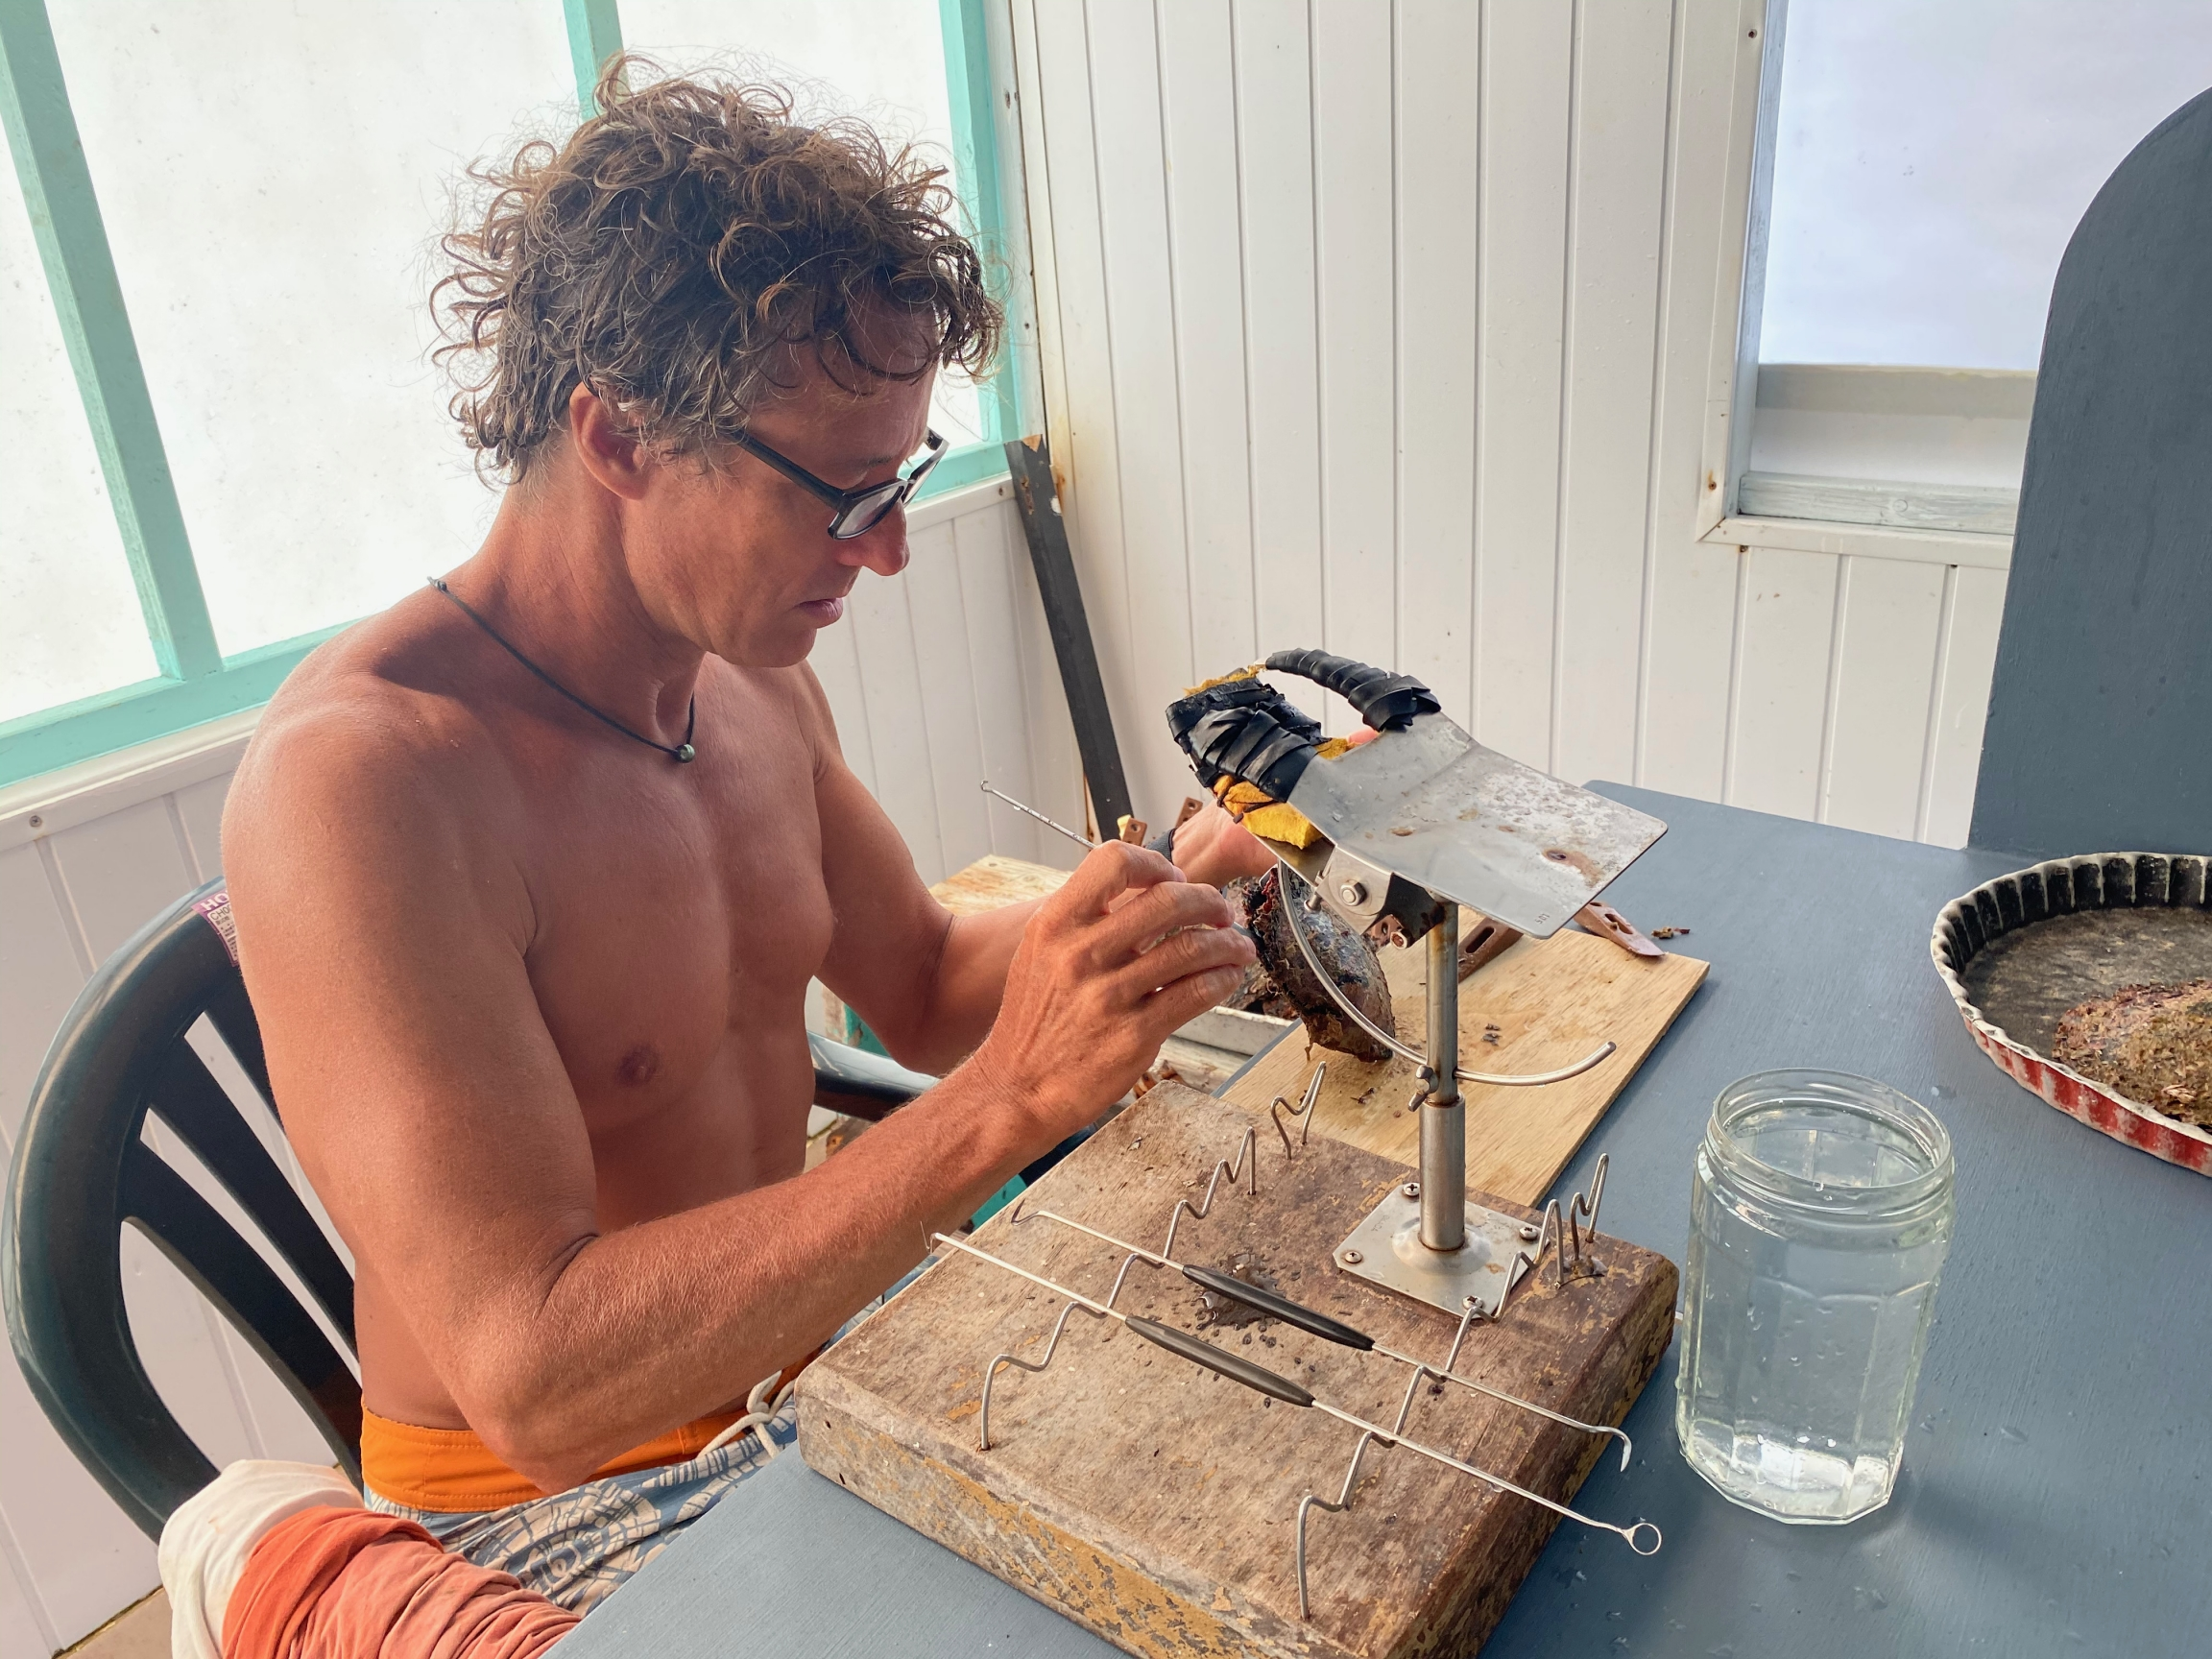 Kamoka Pearl Farm owner Josh Humbert uses a small spatula and scalpel to extract a cultured pearl from a newly cleaned oyster.